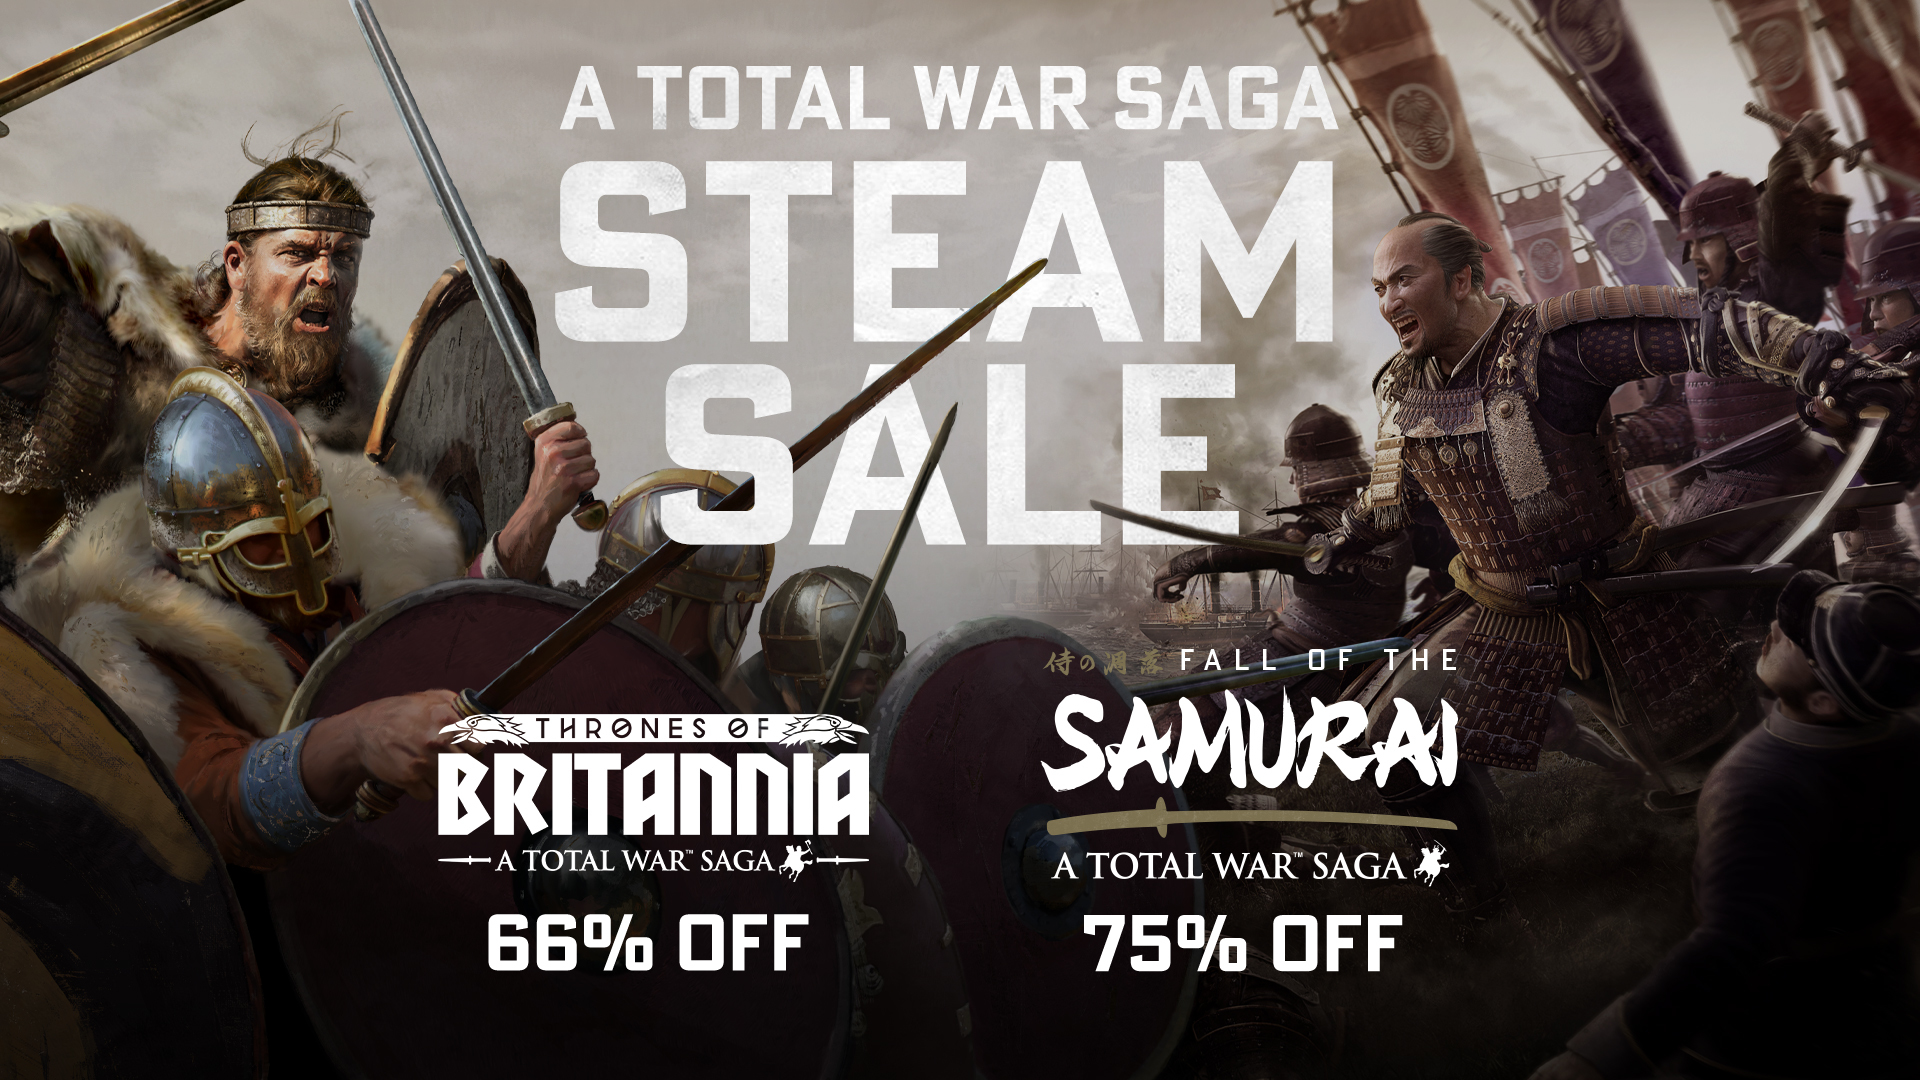 Last chance to save up to 75% on Saga titles!